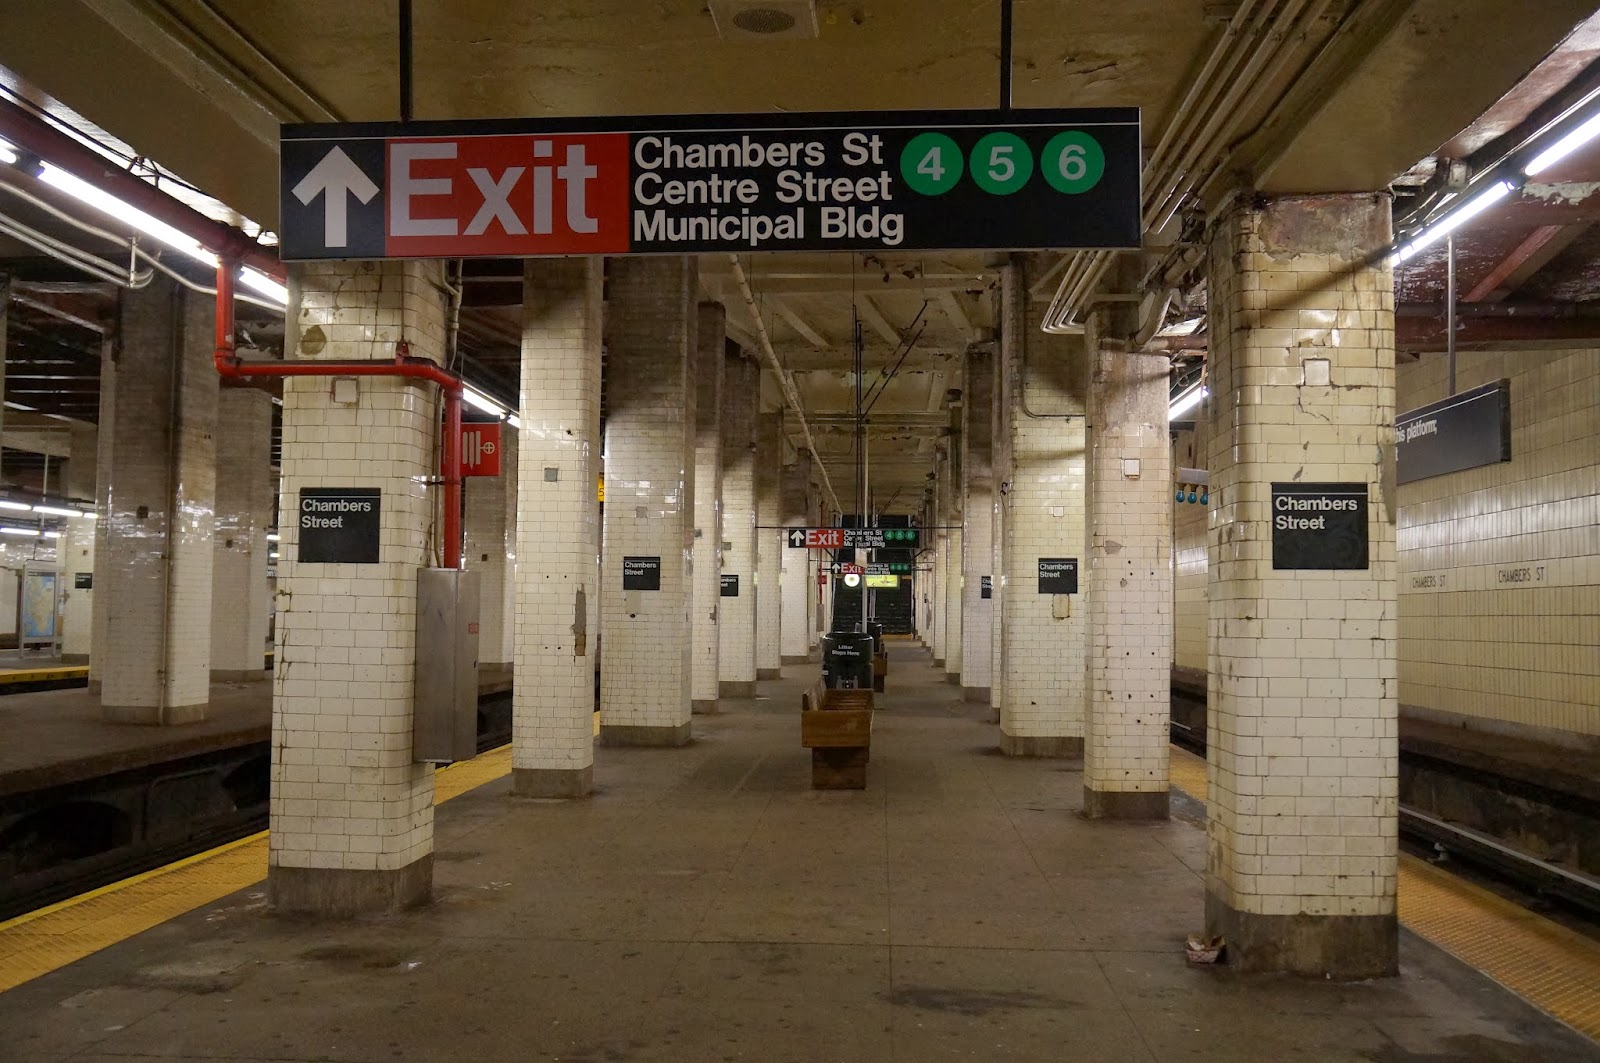 subway, mta, chamber street, underground, metro, NYC, New York, 10 free things to do, free things to do in NYC, travel, New York, explore, adventures, photography, usa, tourism, tourists,